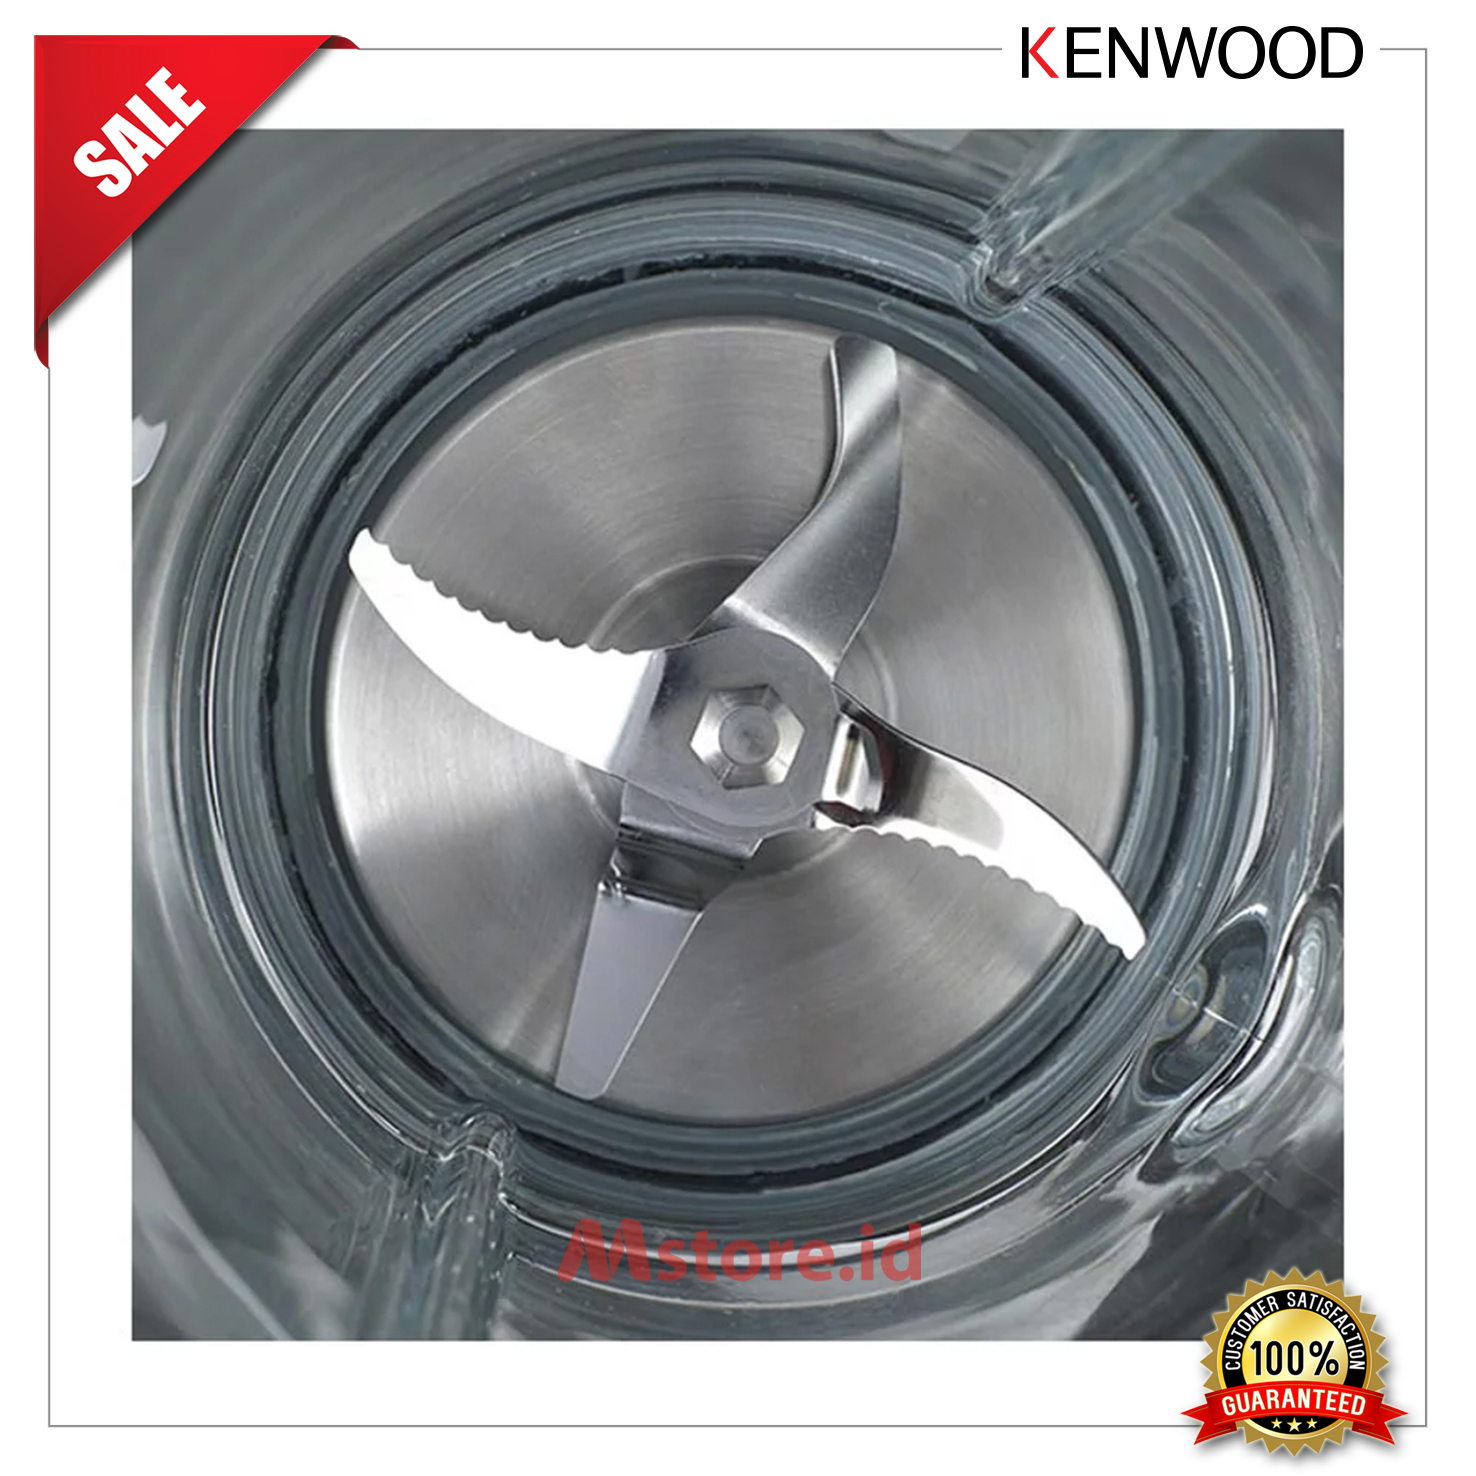 KENWOOD BLM 800 WH BLENDER_M-store_multimayaka_2